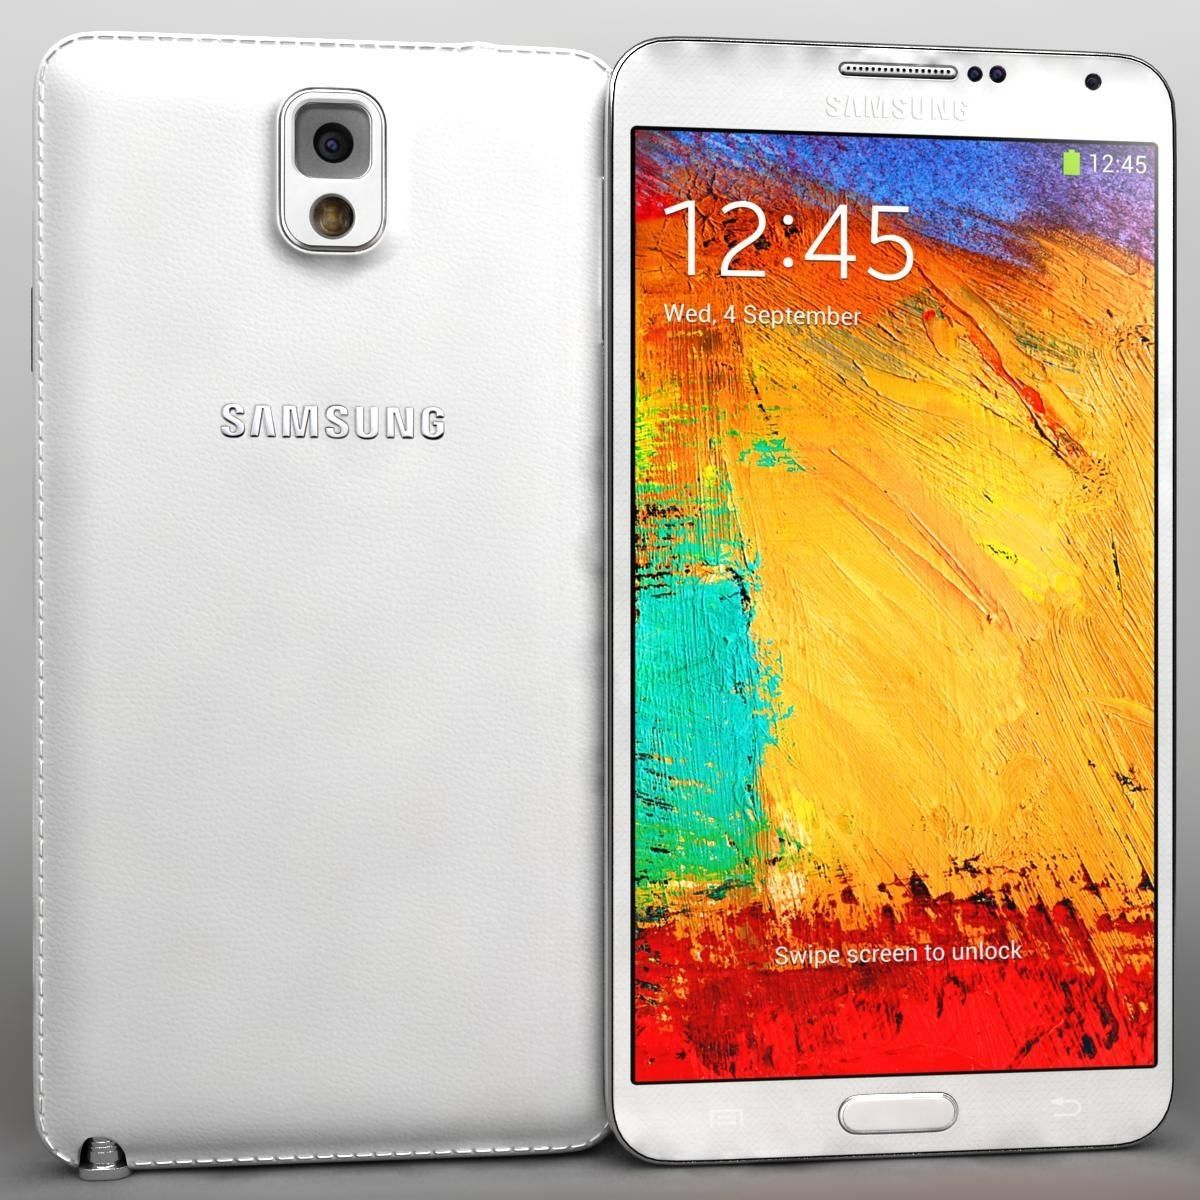 Samsung Galaxy Note 3 White 3d Model Ad Galaxy Samsung Note Model Samsung Galaxy Note Galaxy Note Galaxy Note 3